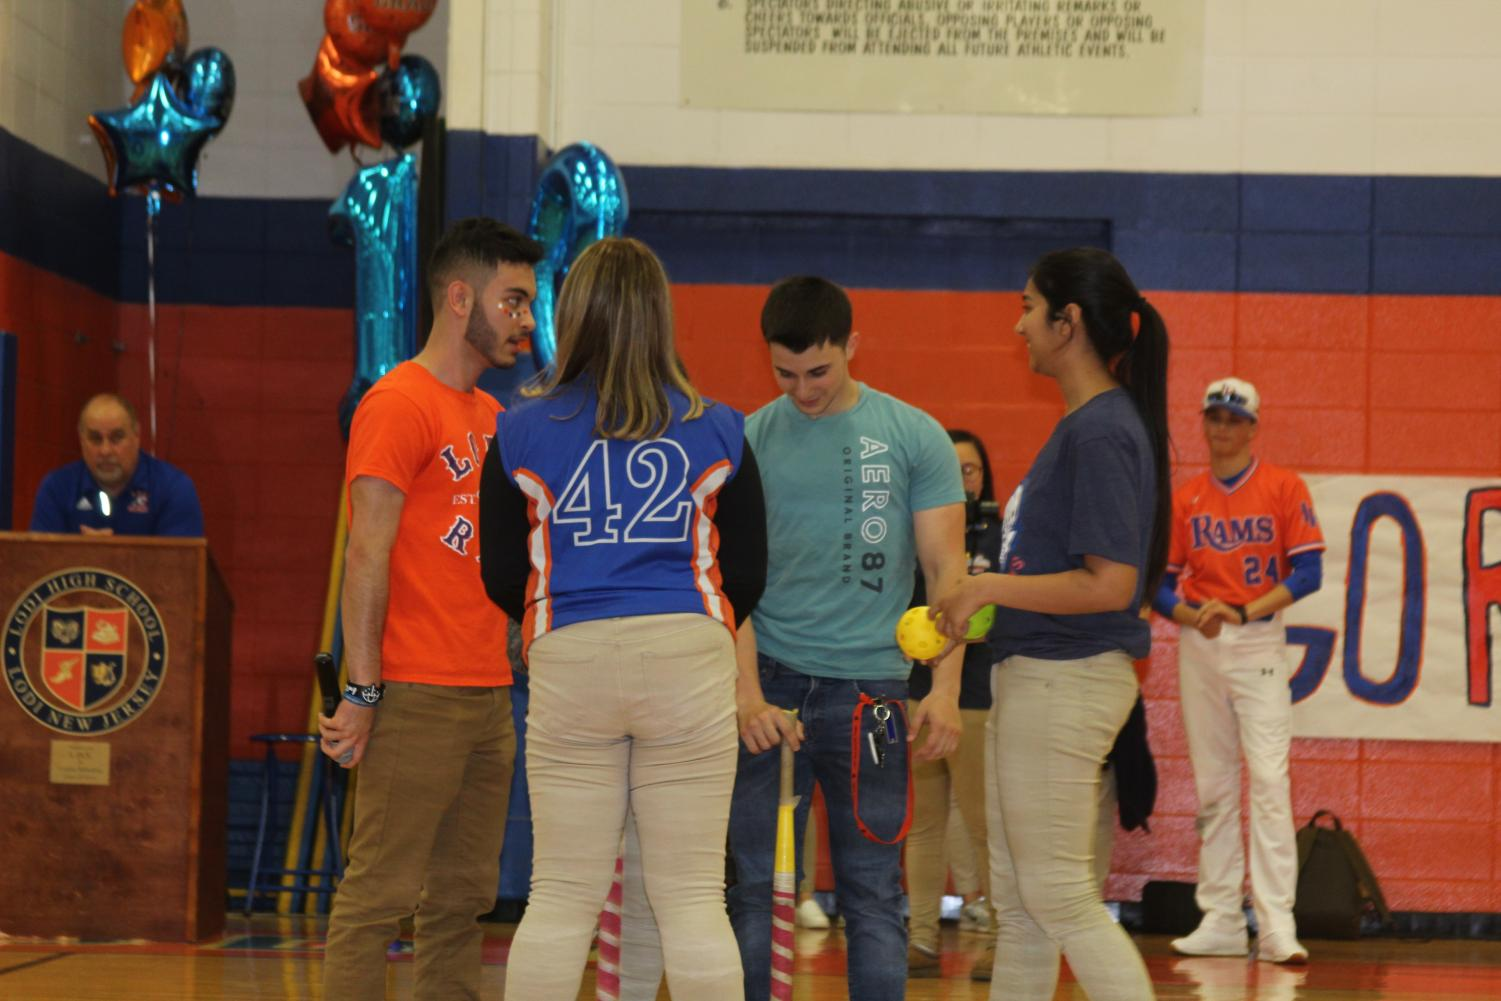 Vice+President+Hardeep+Kaur+and+President+Andres+Balvin+explaining+the+game+to+the+participants+